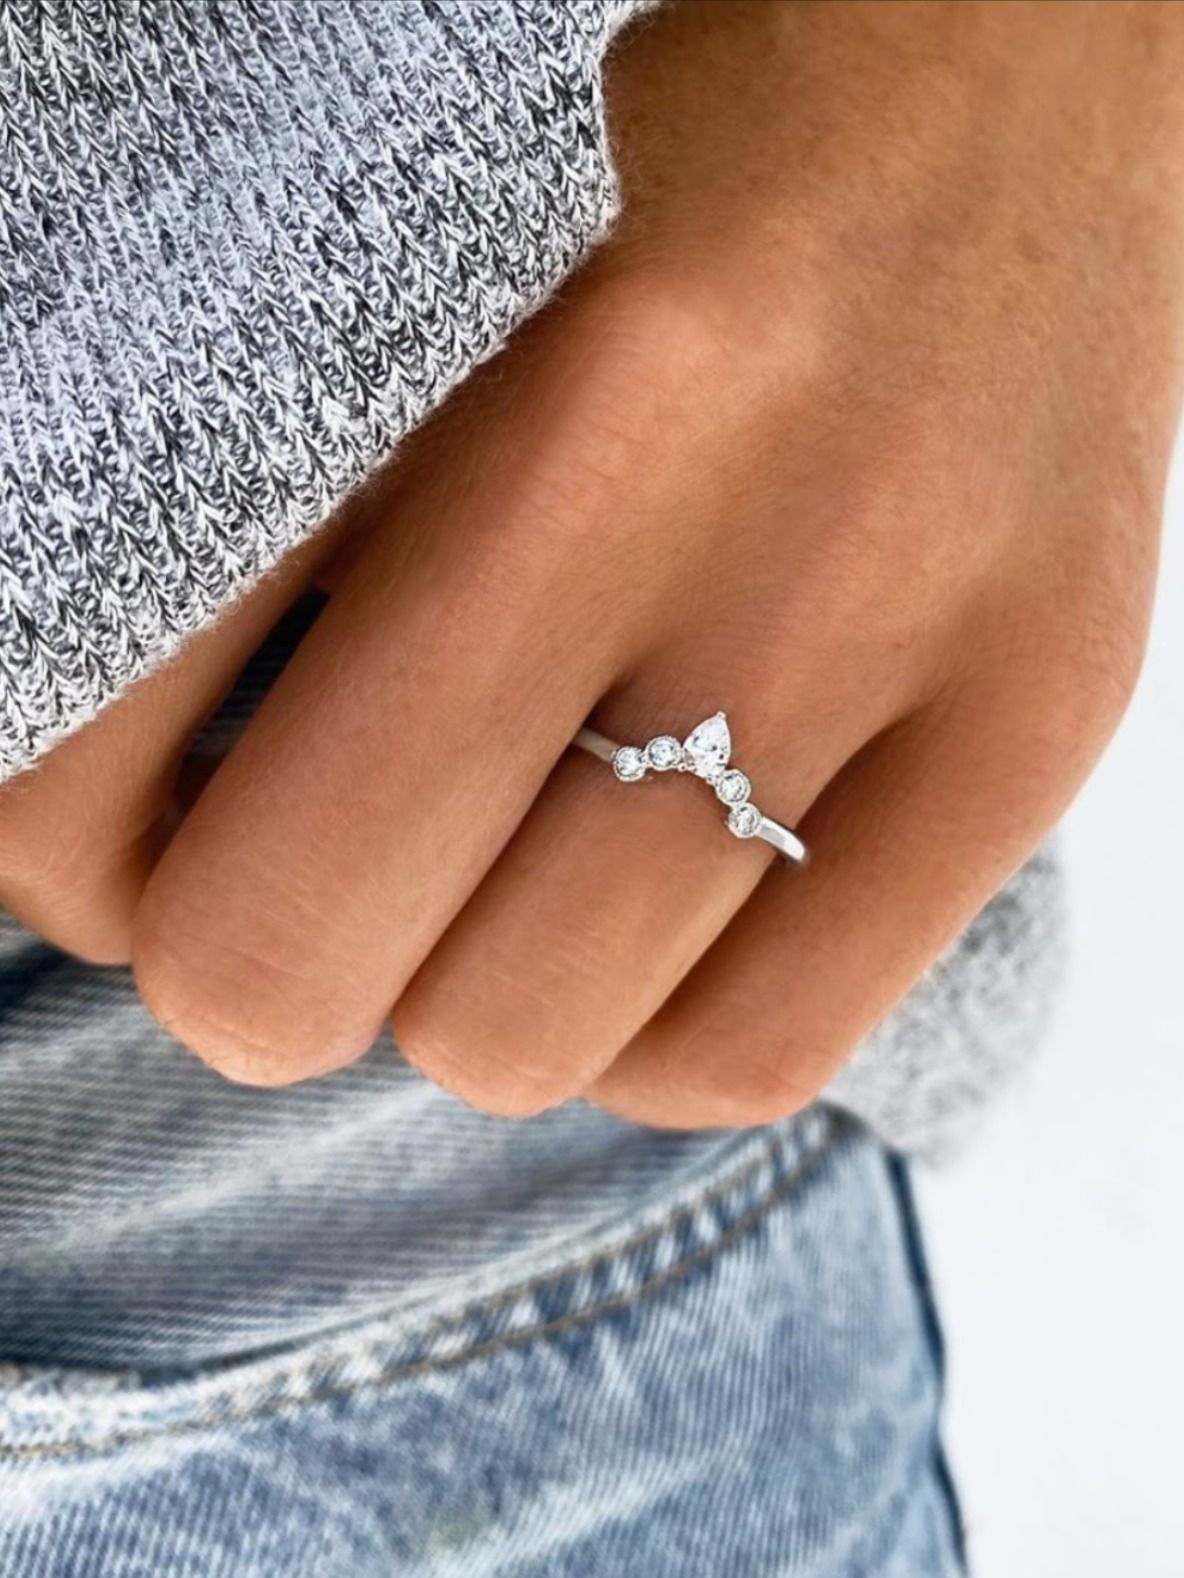 The Pear Shaped Stone Nesting Band is classy & affordable